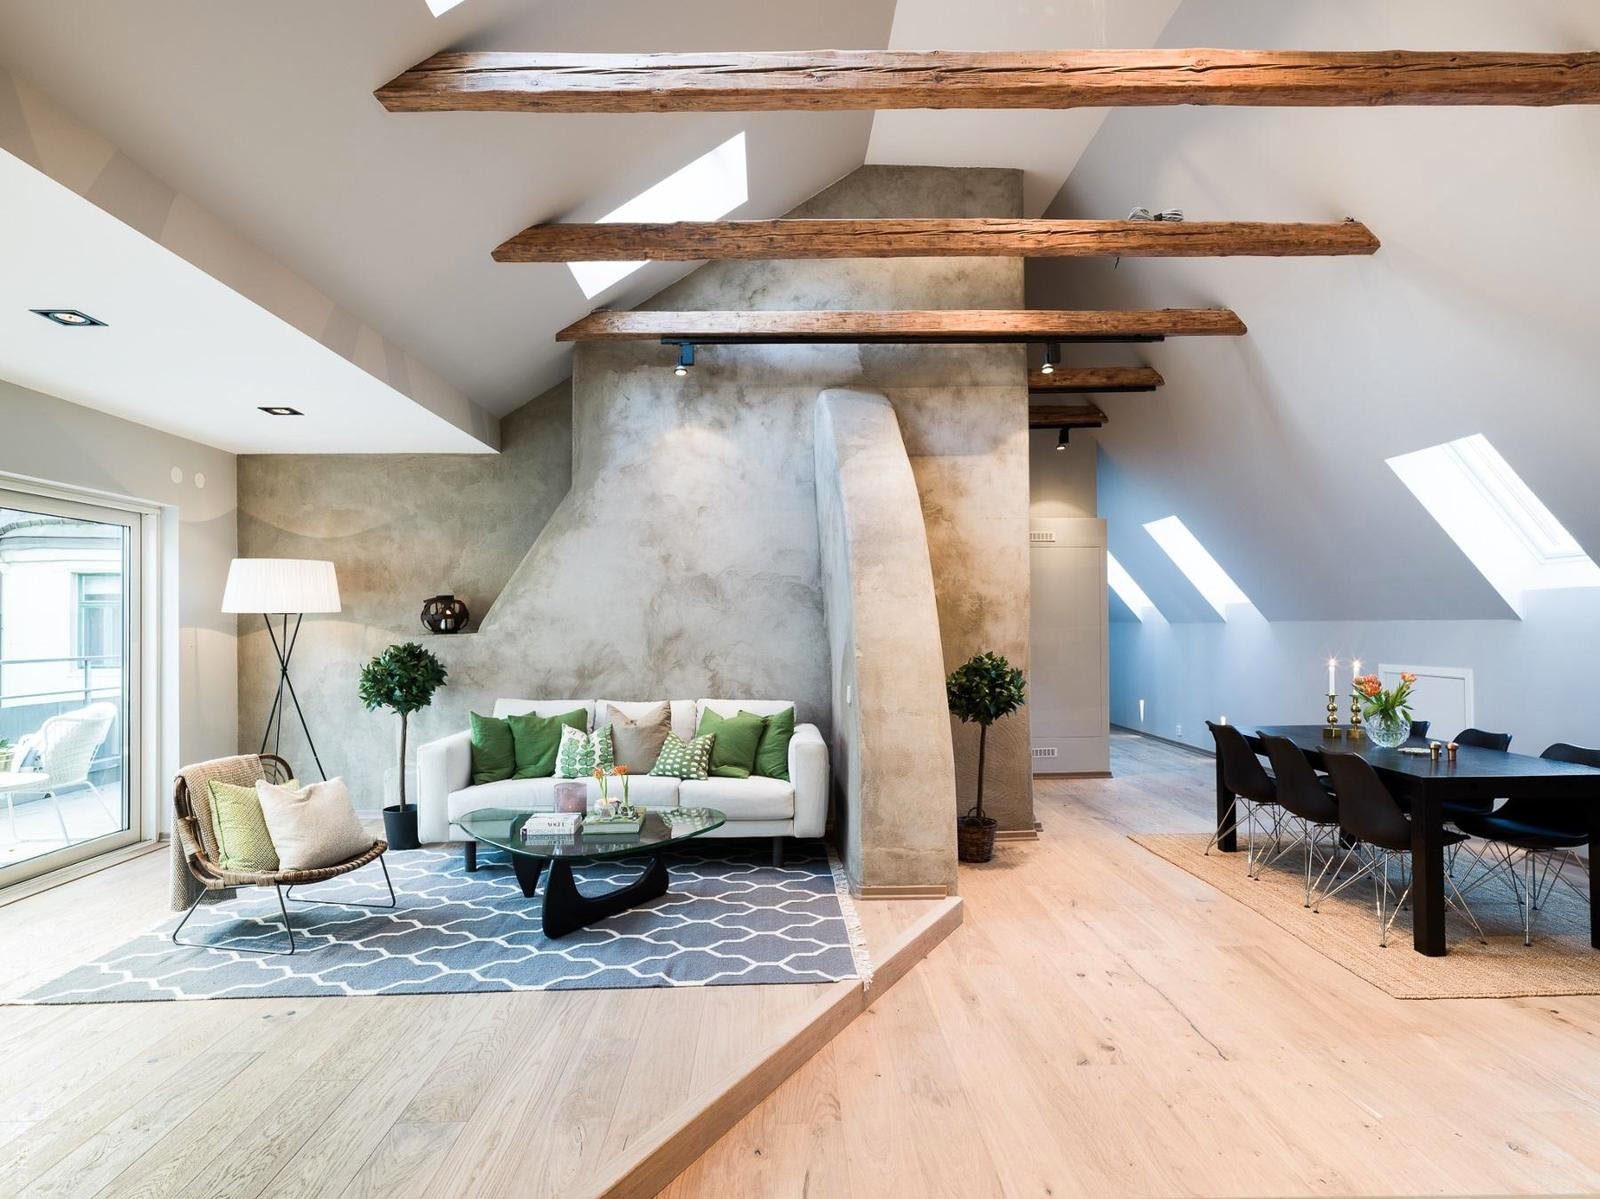 Scandinavian Attic Apartment With Wood Floors And Warm